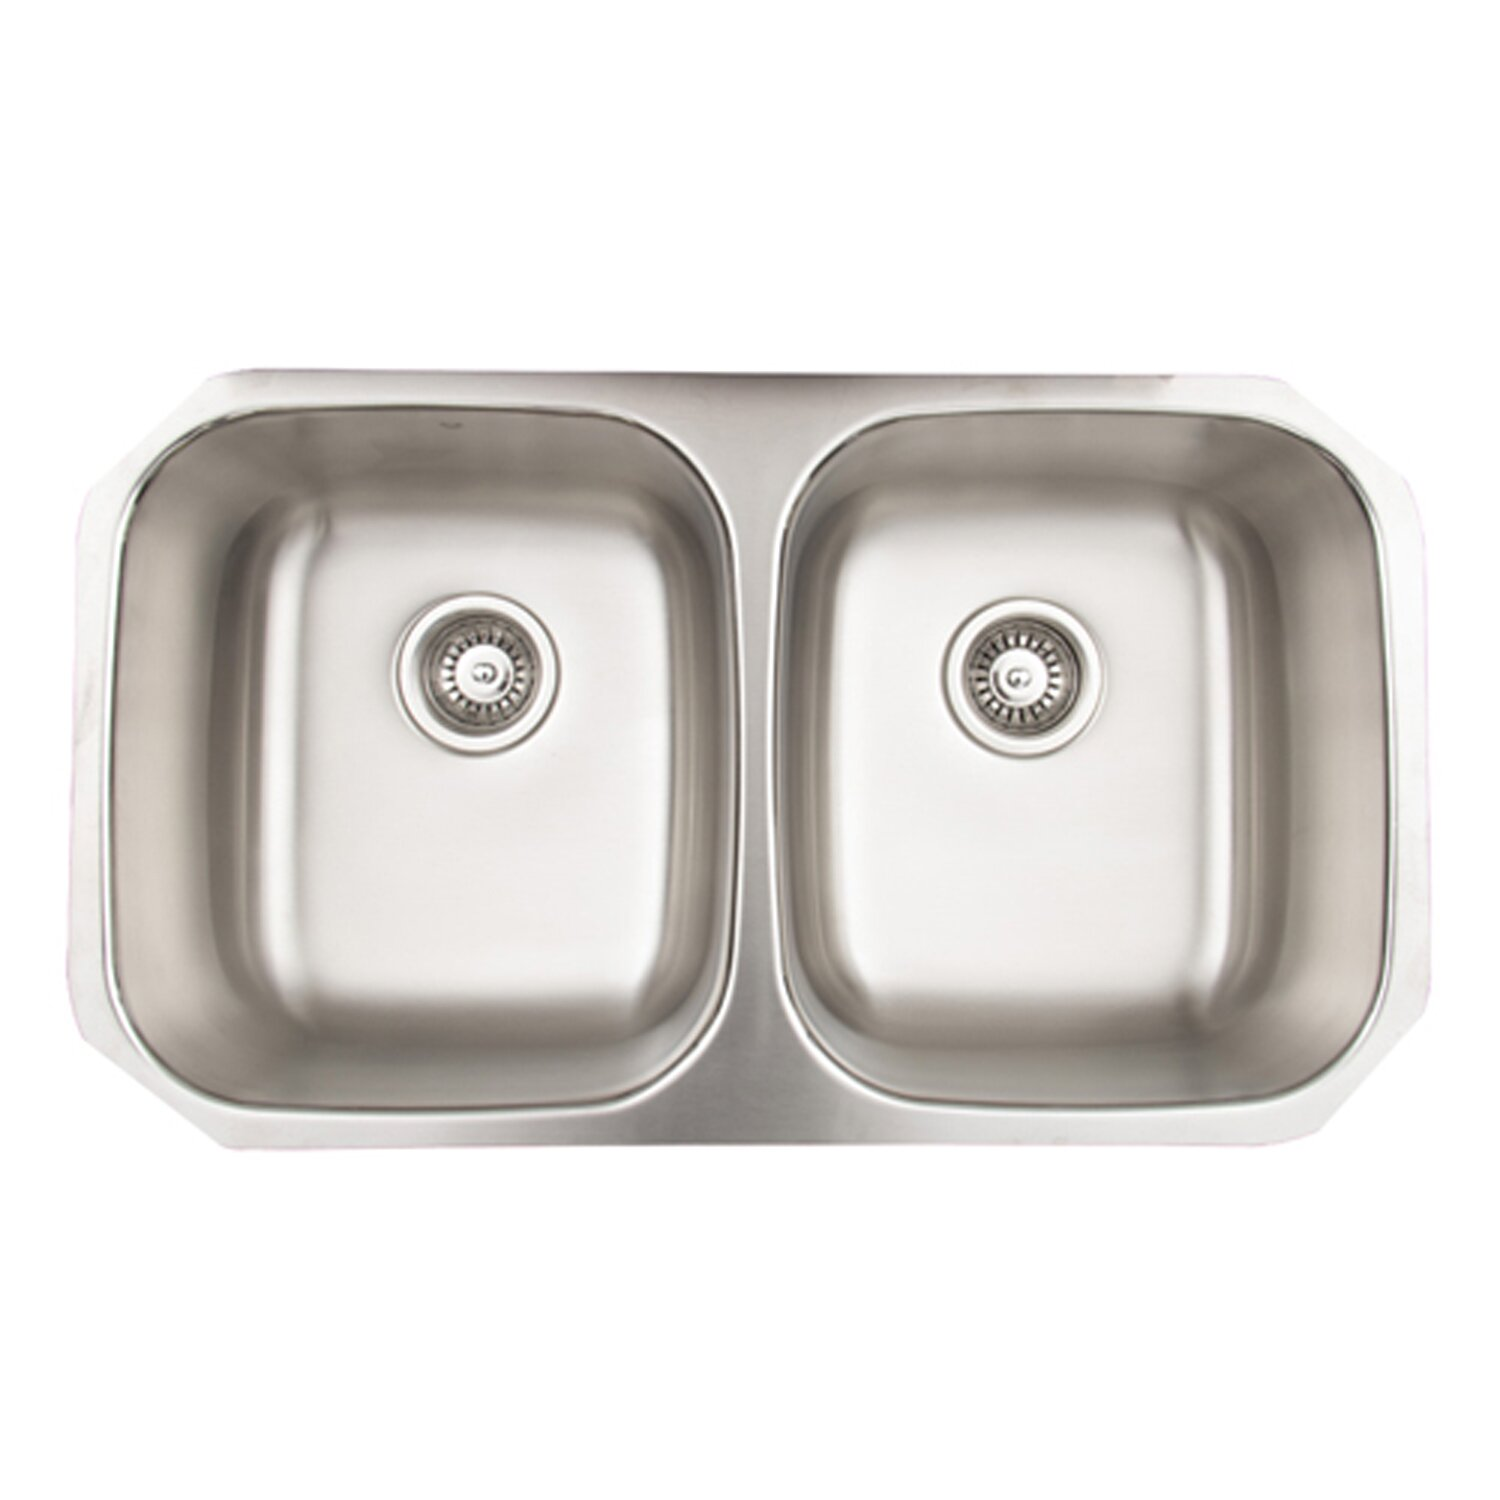 32 Inch Undermount Kitchen Sink : 32 inch Undermount 50/50 Double Bowl 18 Gauge Stainless Steel Kitchen ...